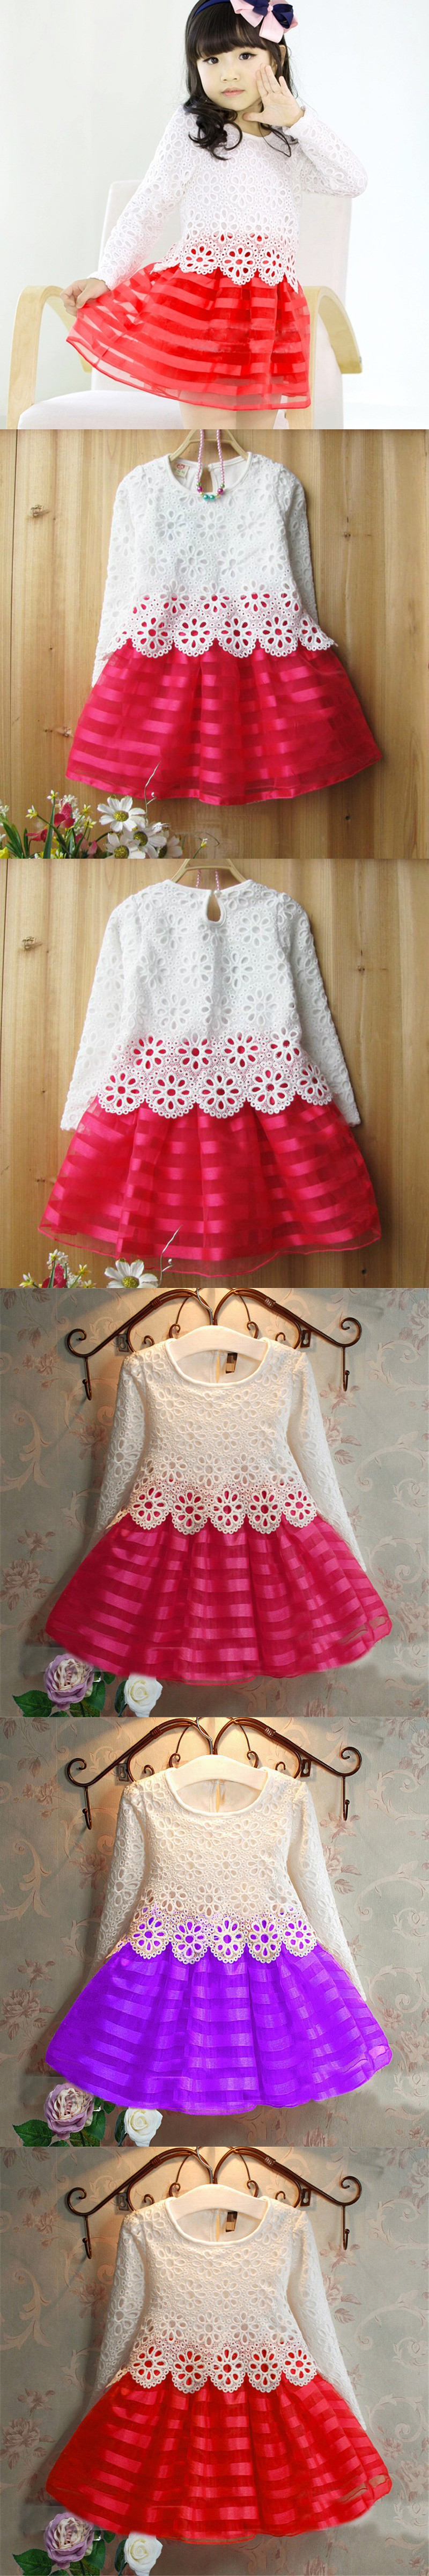 summer dresses kids party for girl dress children girls clothes